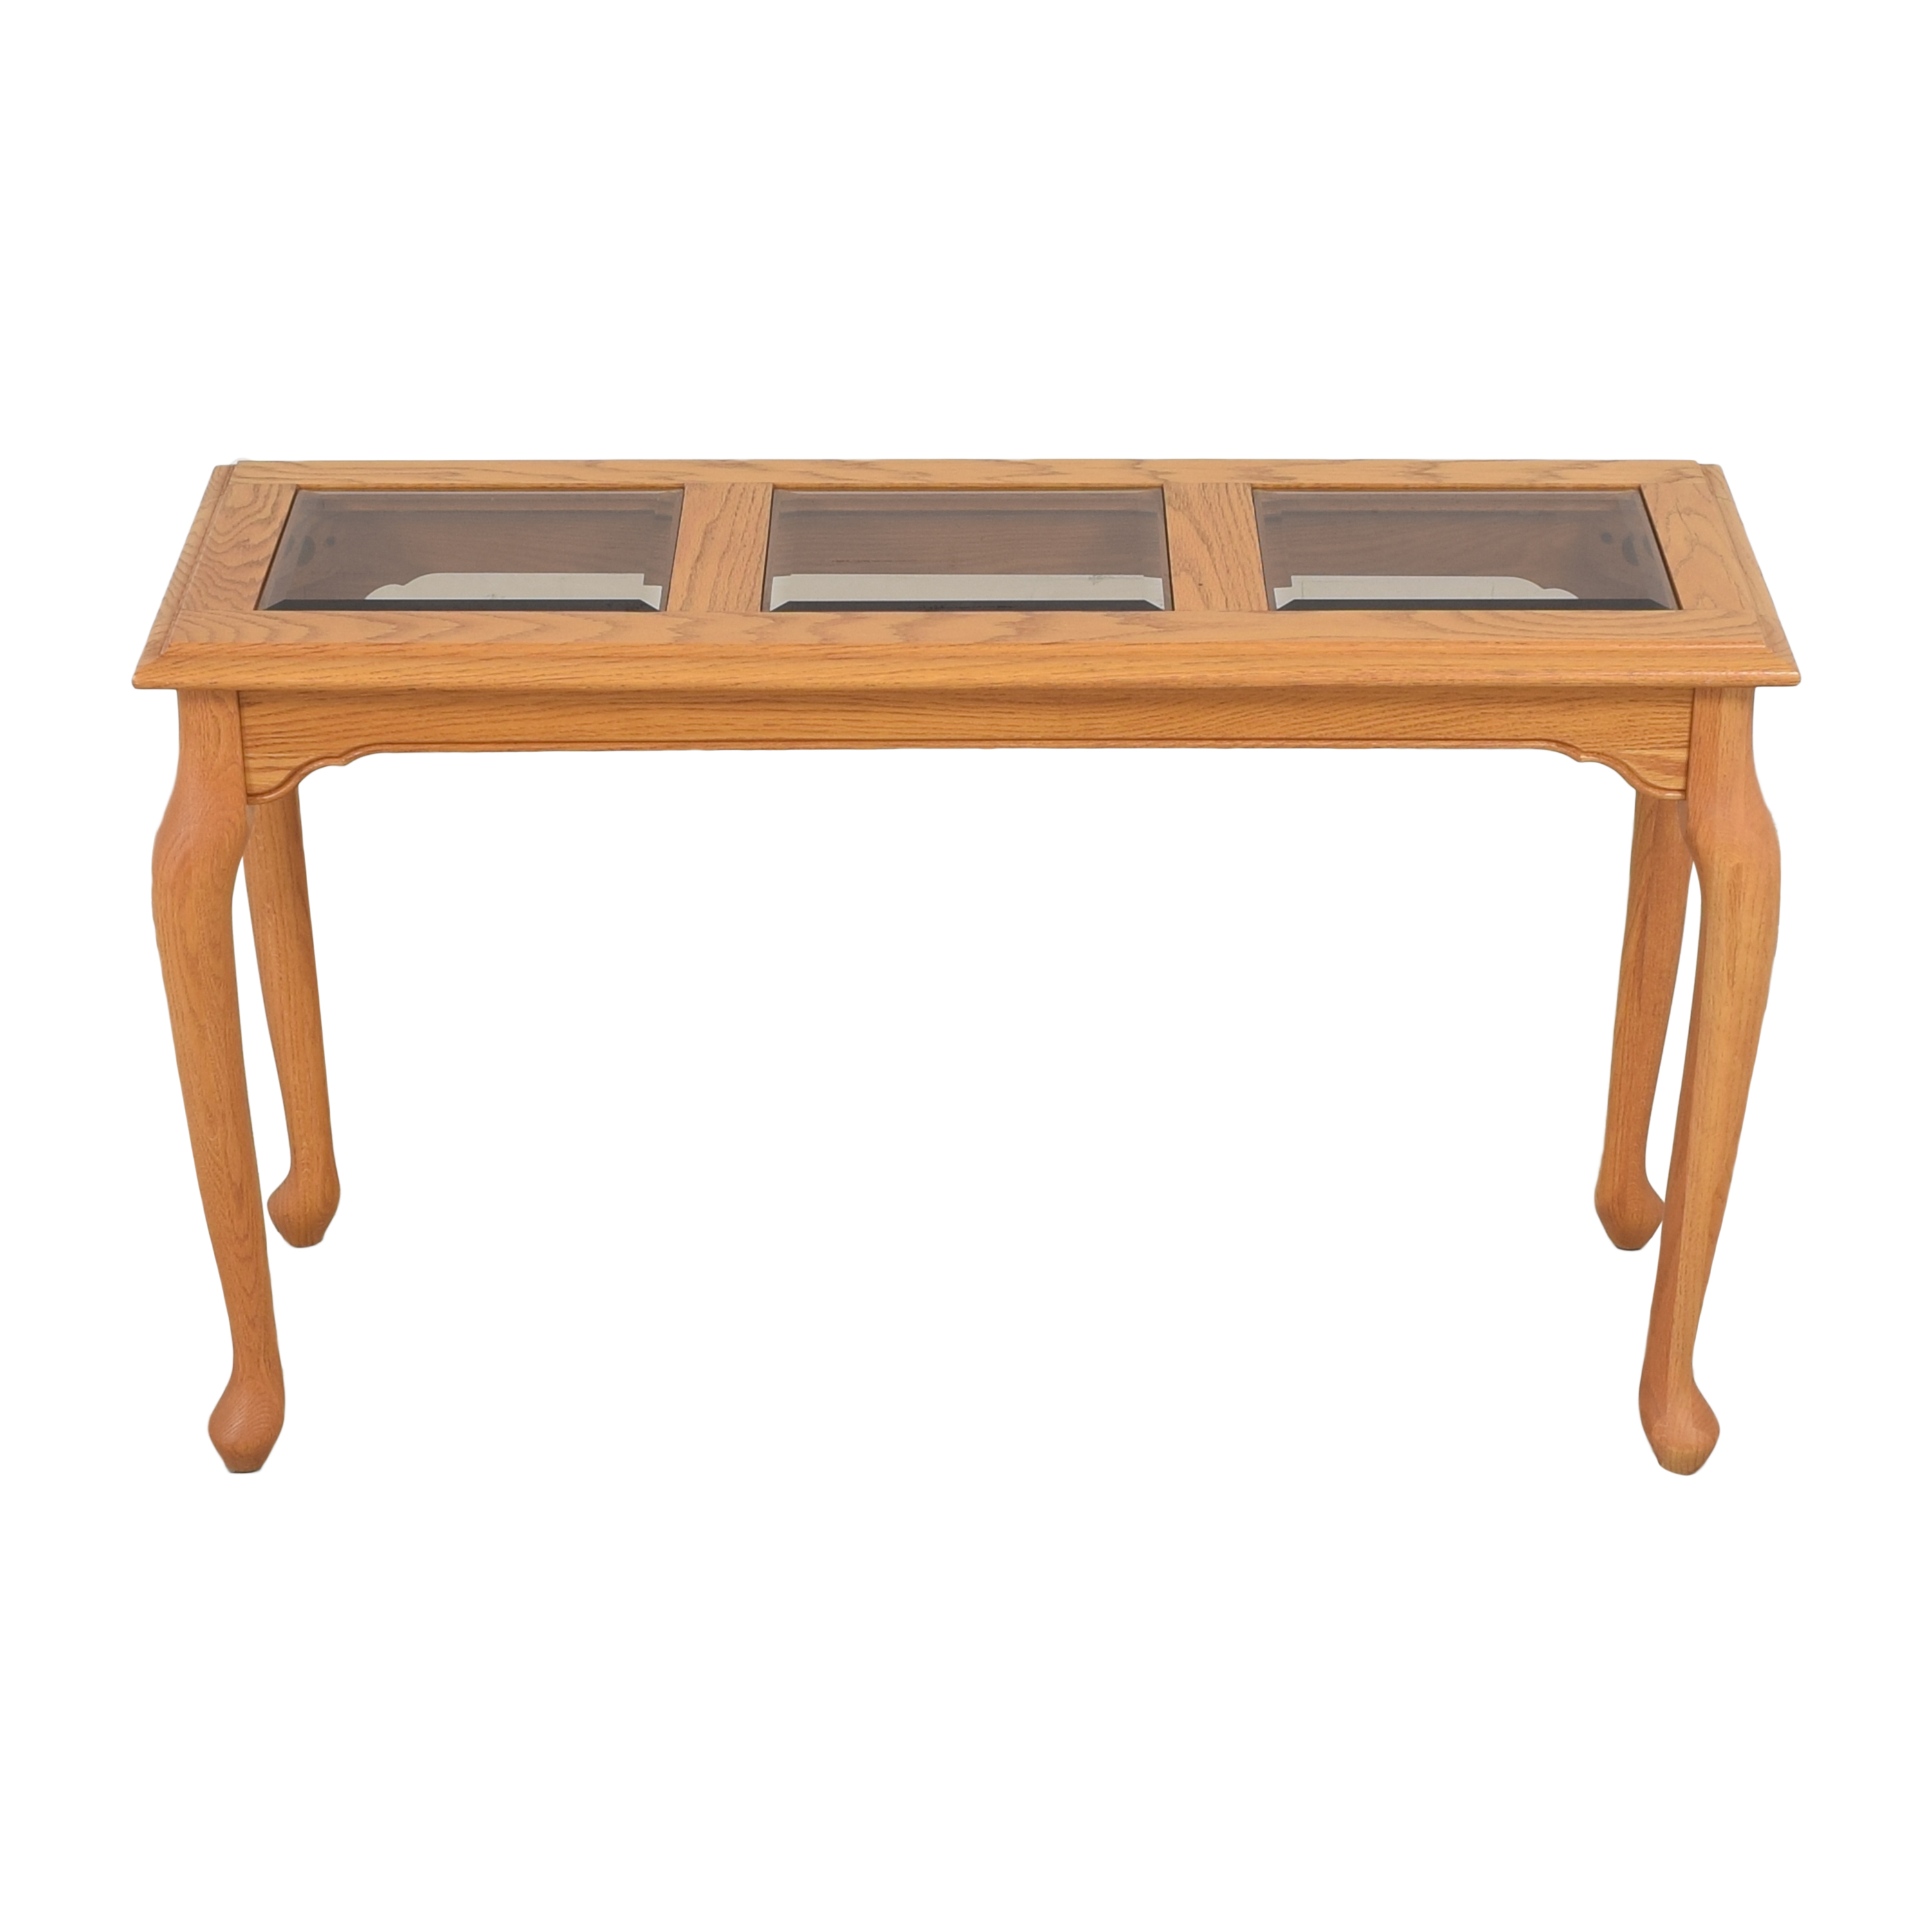 shop Heirloom Furniture Paneled Console Table Heirloom Furniture Tables